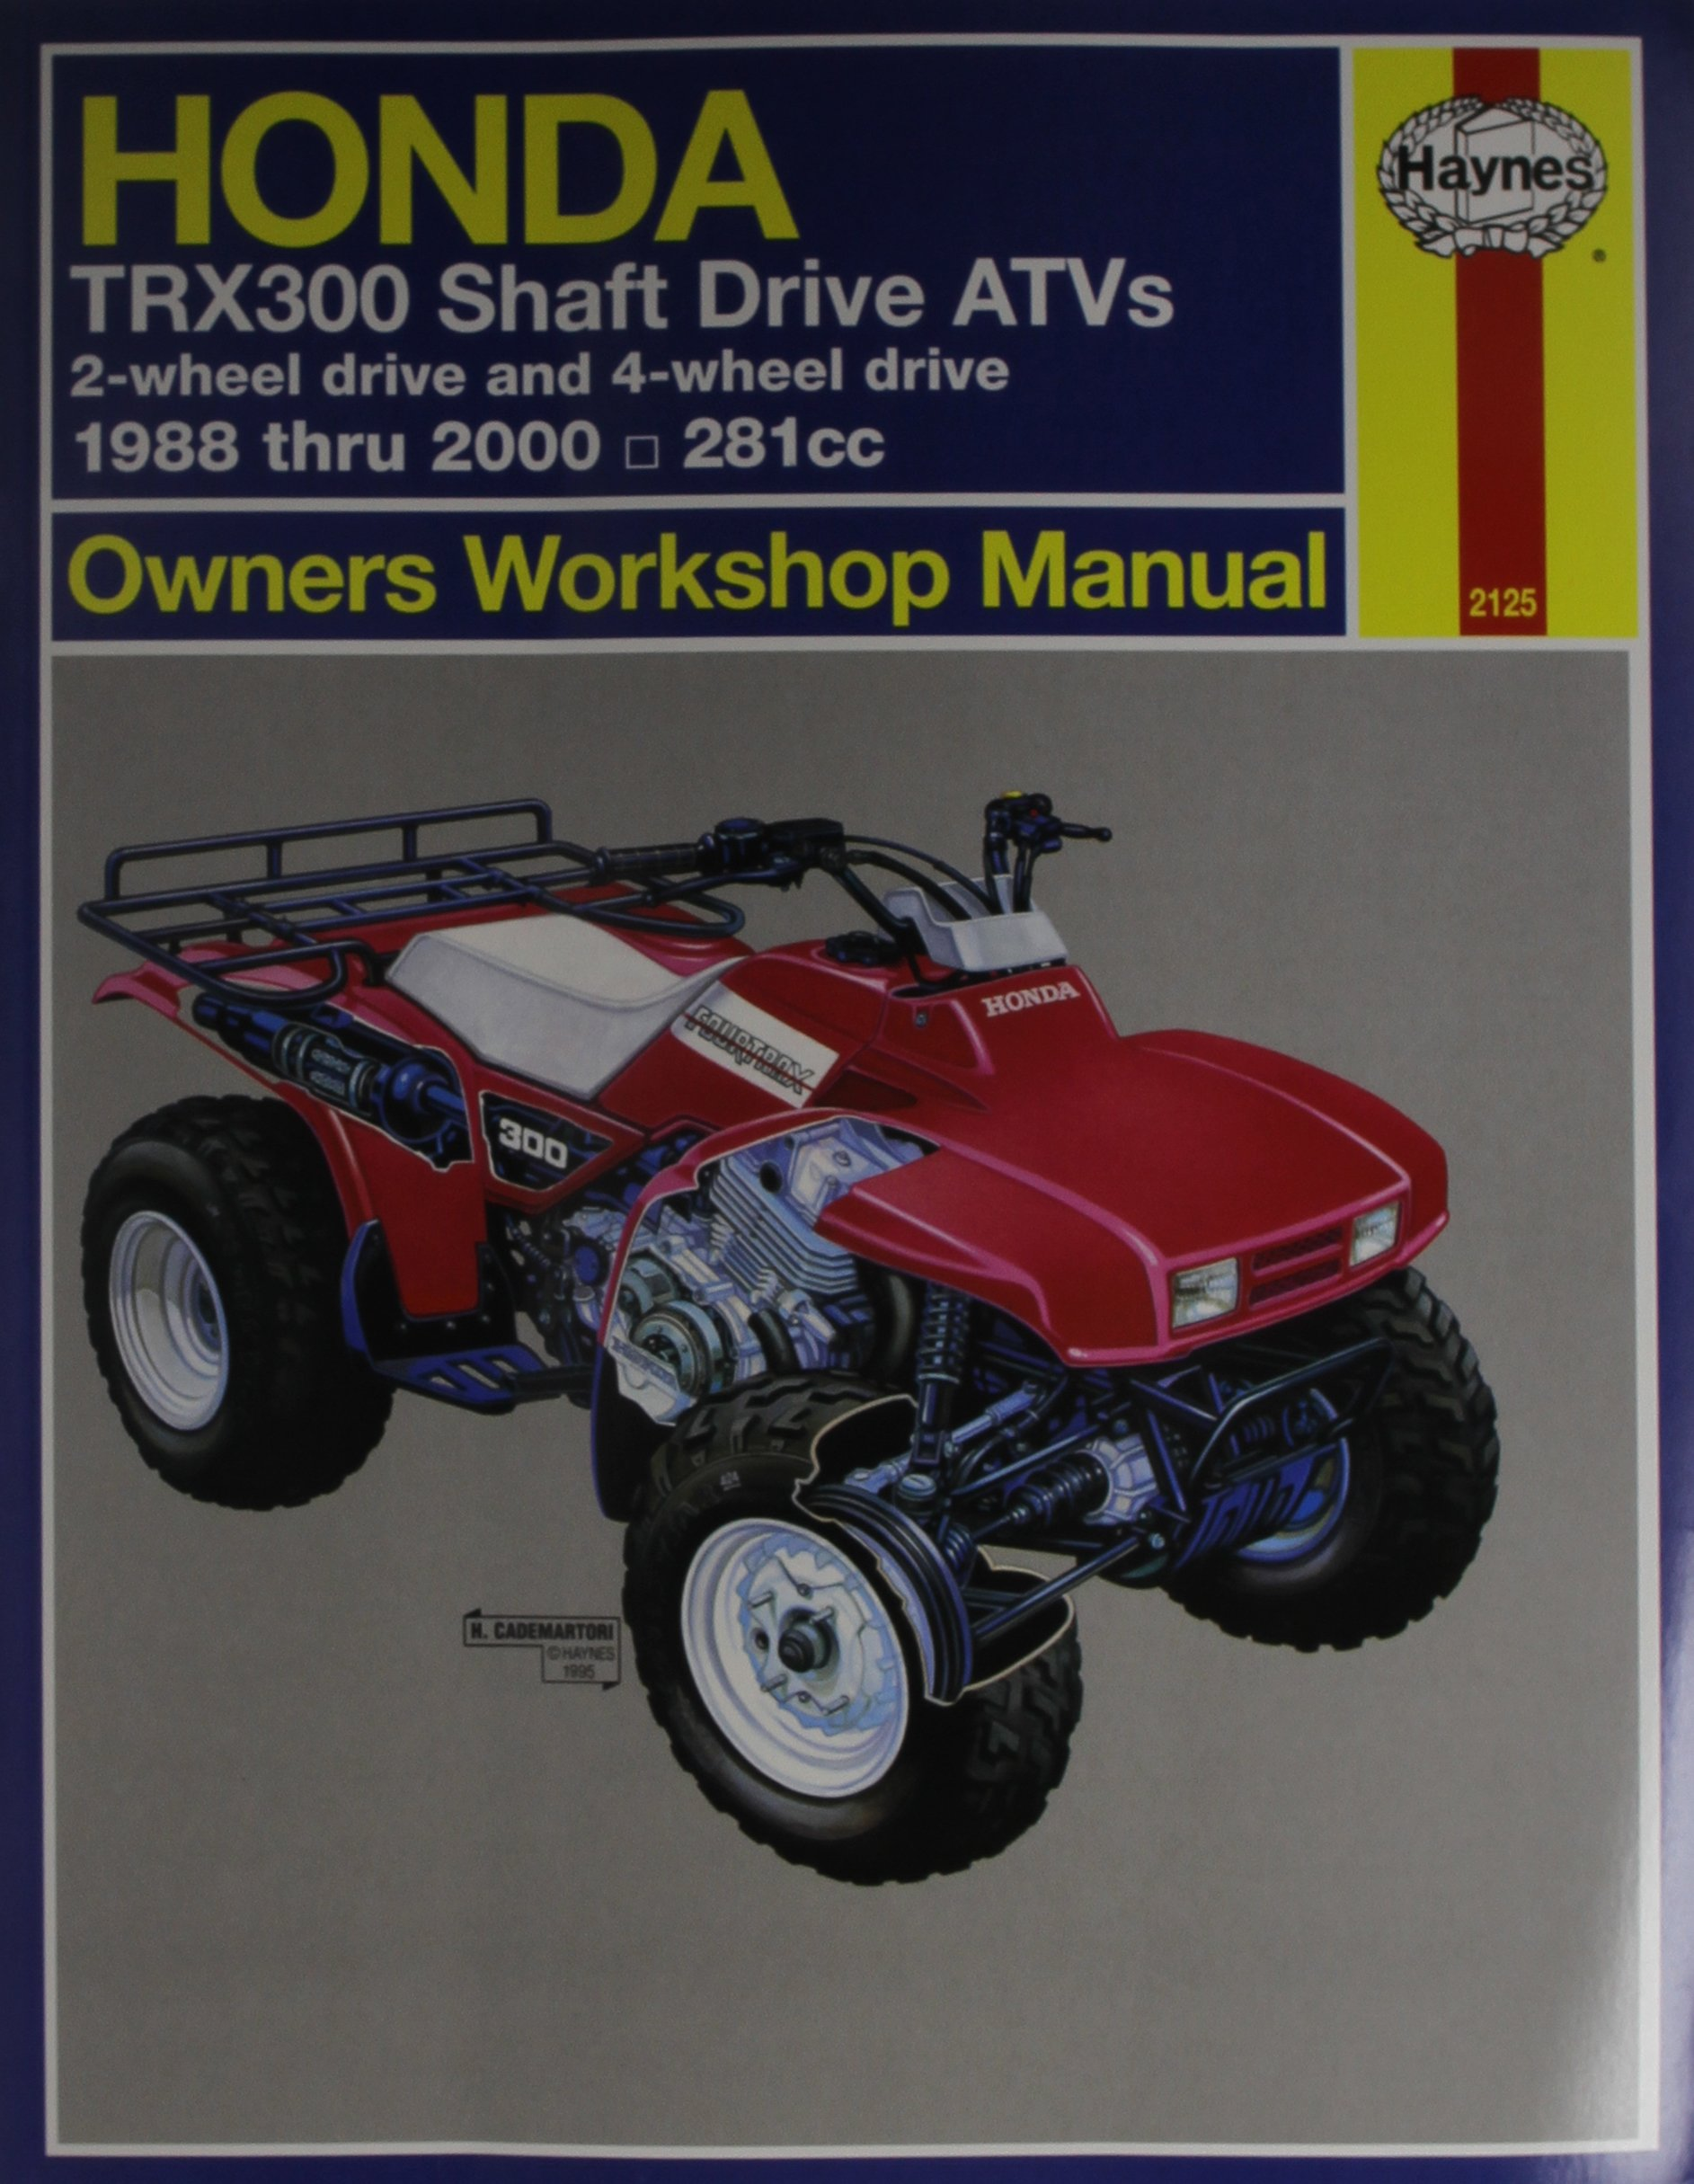 Honda Trx300 Shaft Drive ATVs Owners Workshop Manual 1988 Thru 1995. 281  cc. (Haynes Owners Workshop Manuals): Alan Ahlstrand, John Harold Haynes:  ...